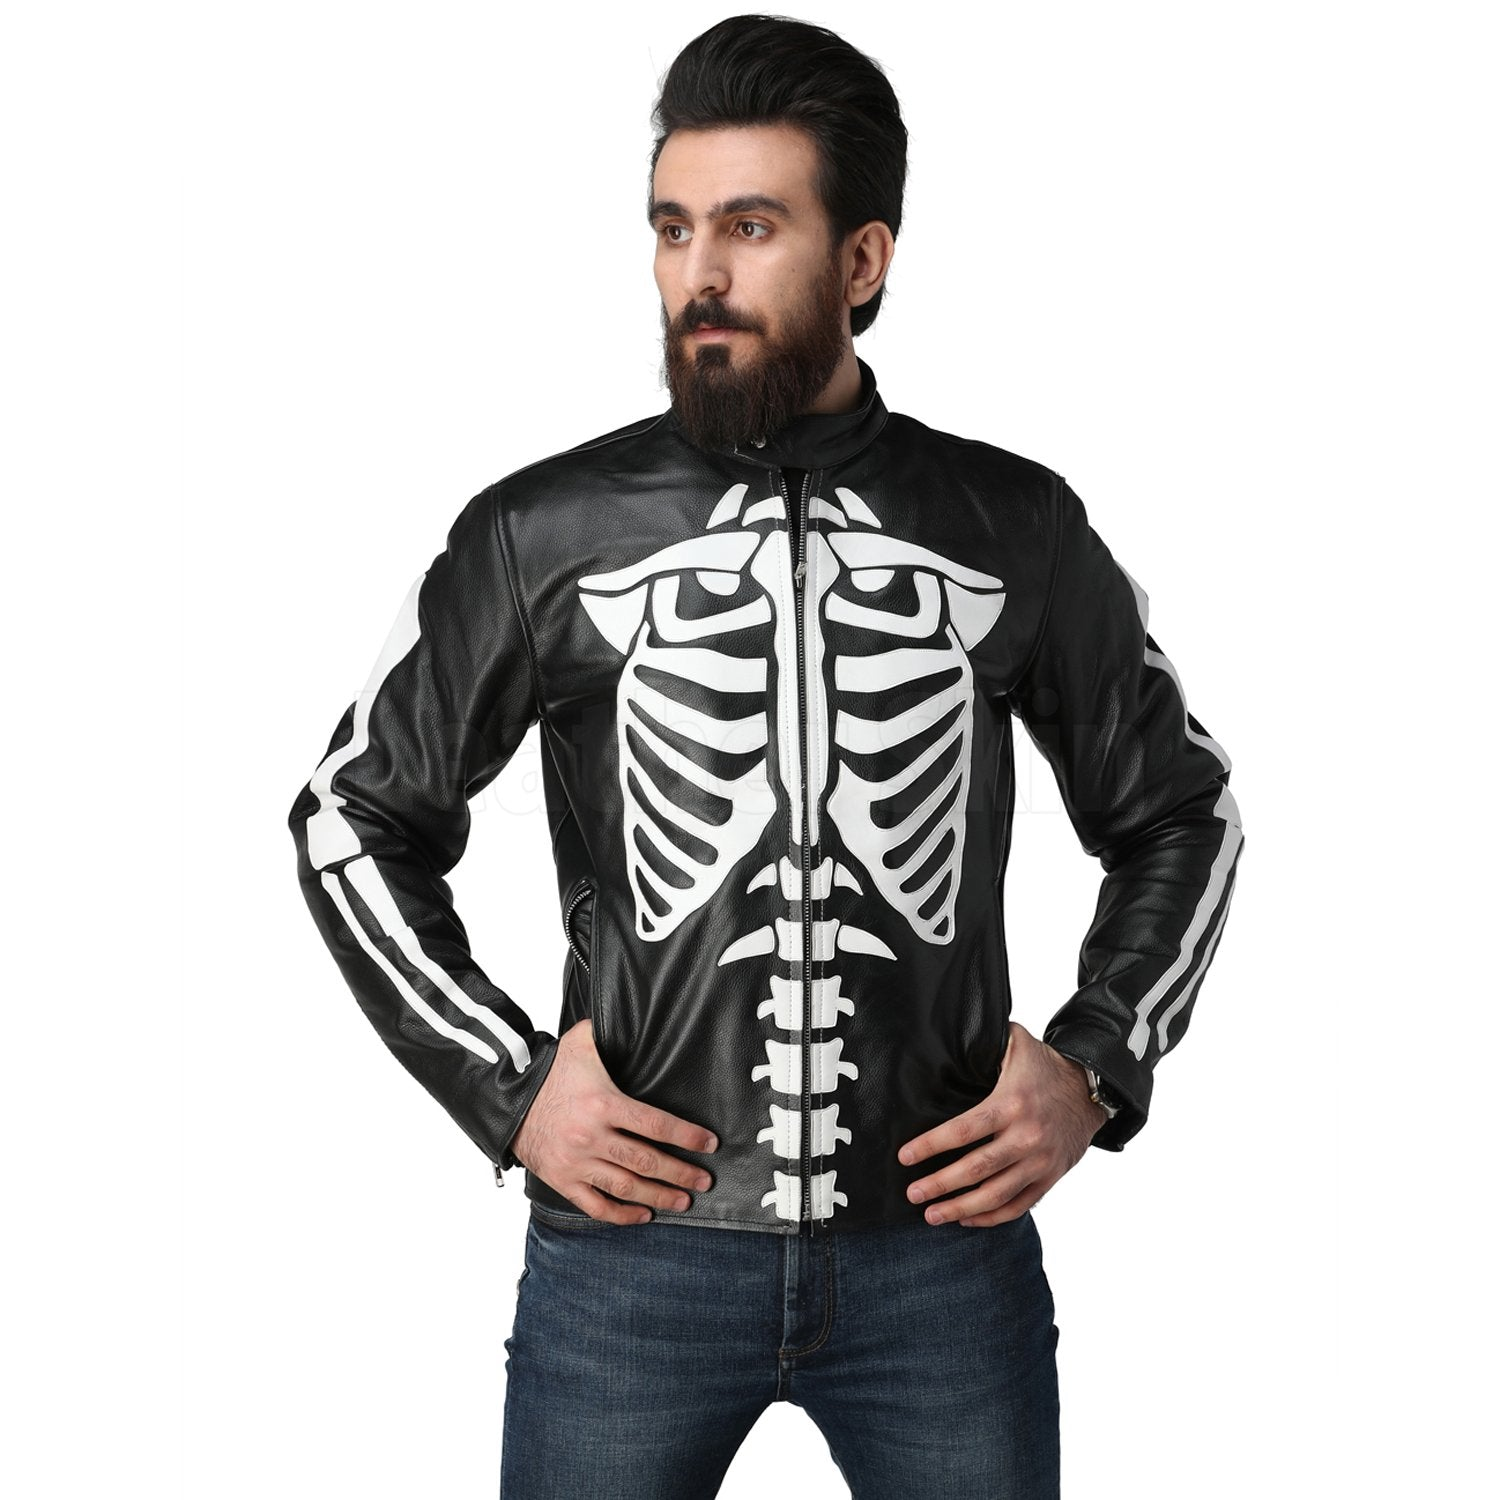 Leather Skin Men Skeleton Biker Motorcycle Genuine Leather Jacket with CE Armors